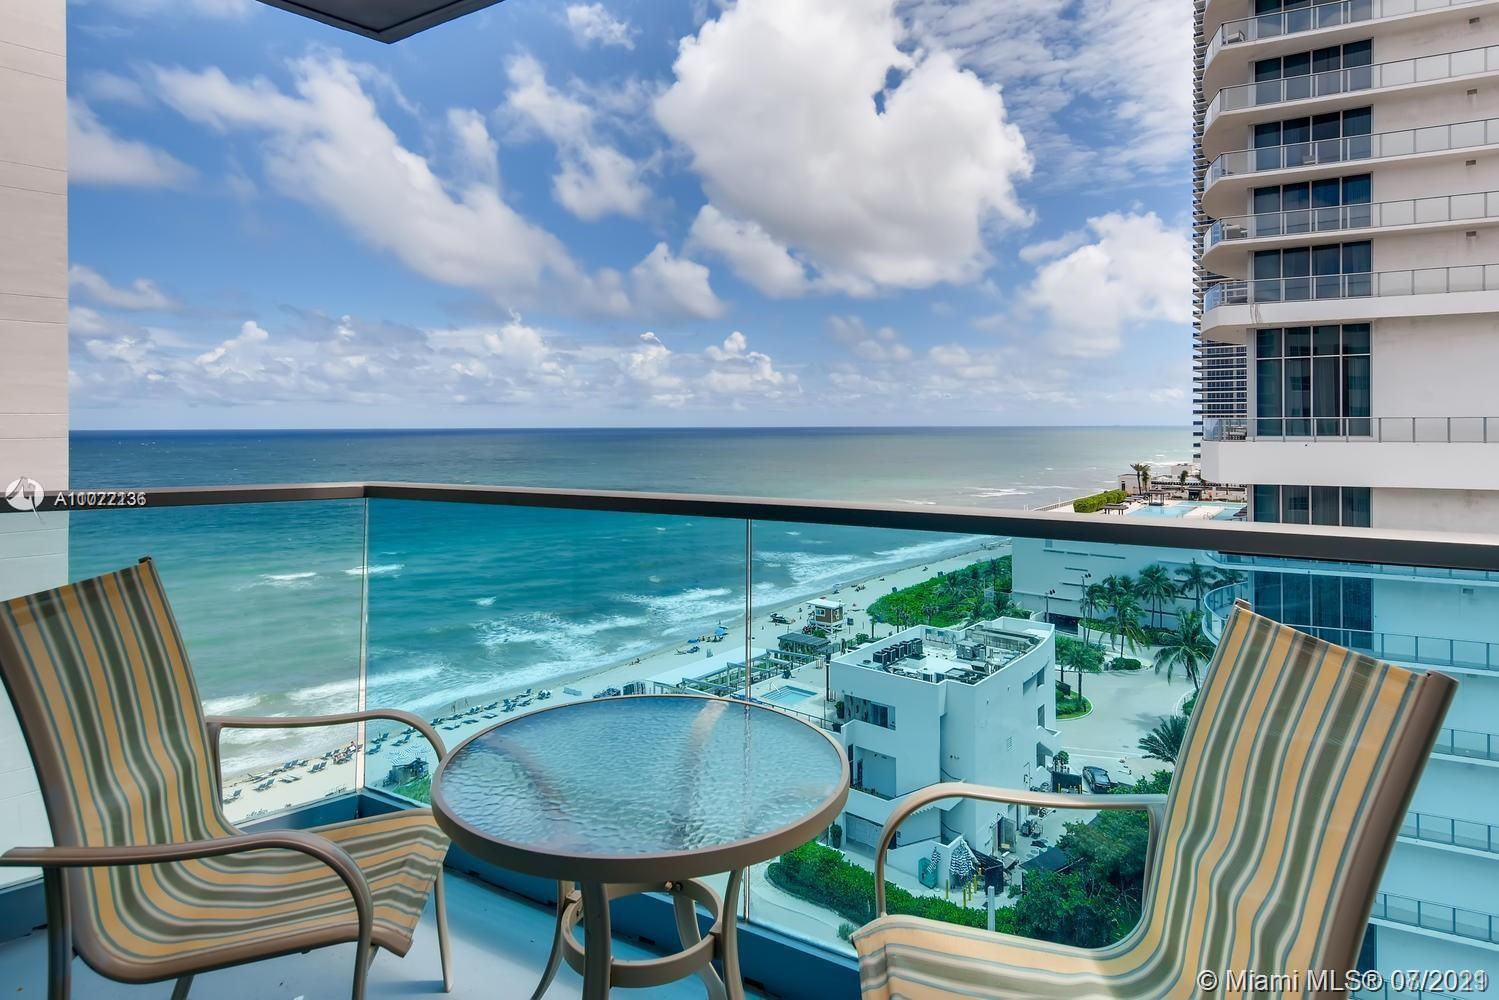 Attention Investors: Turnkey, fully furnished 2 bedroom, 2 bathroom oceanfront condo in Hollywood Be